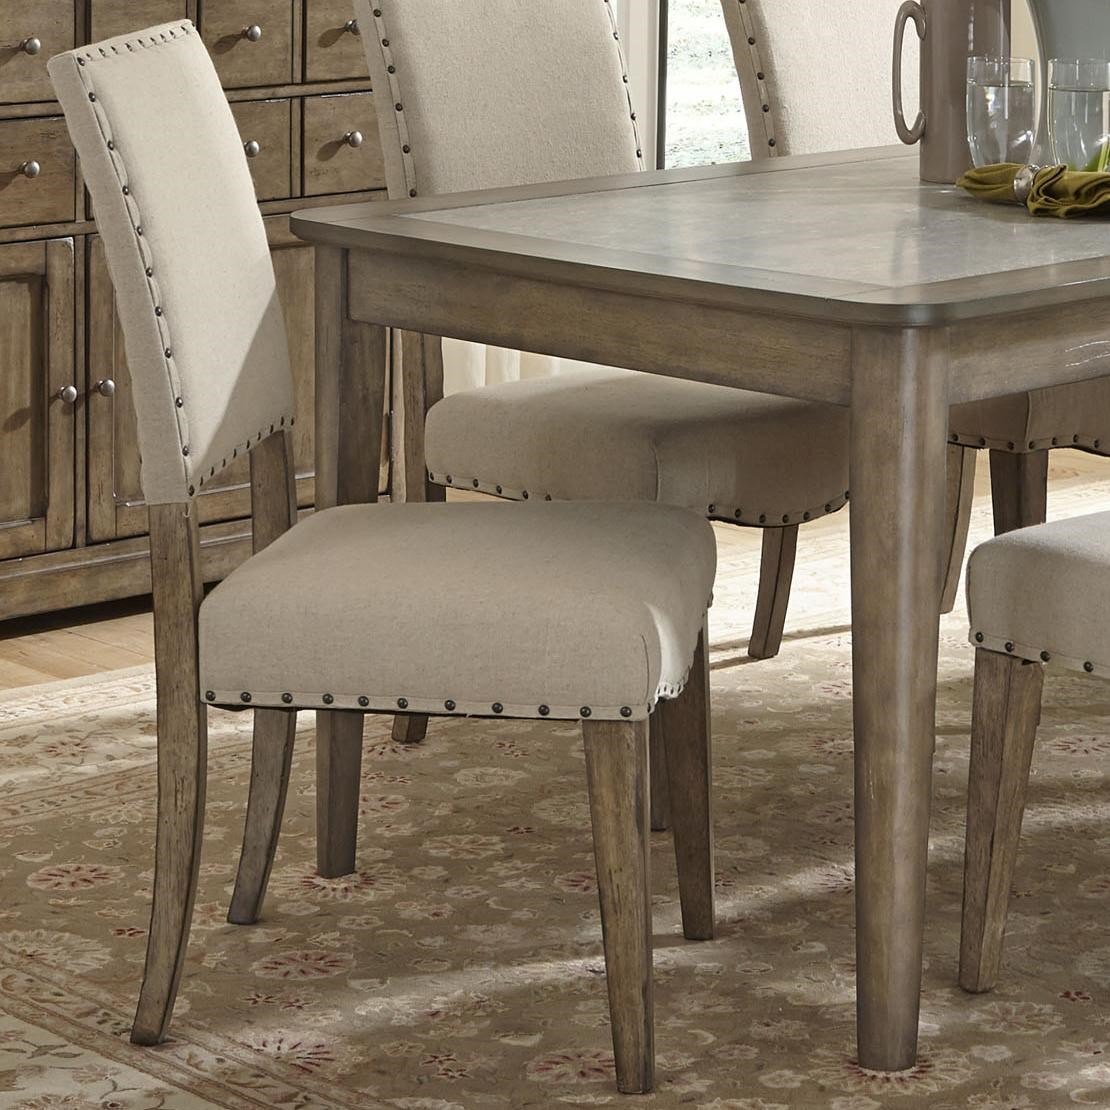 Rustic nailhead dining chairs - Best Liberty Furniture Weatherford Rustic Casual Upholstered Side Chair With Nail Head Trim With Nailhead Dining Chair